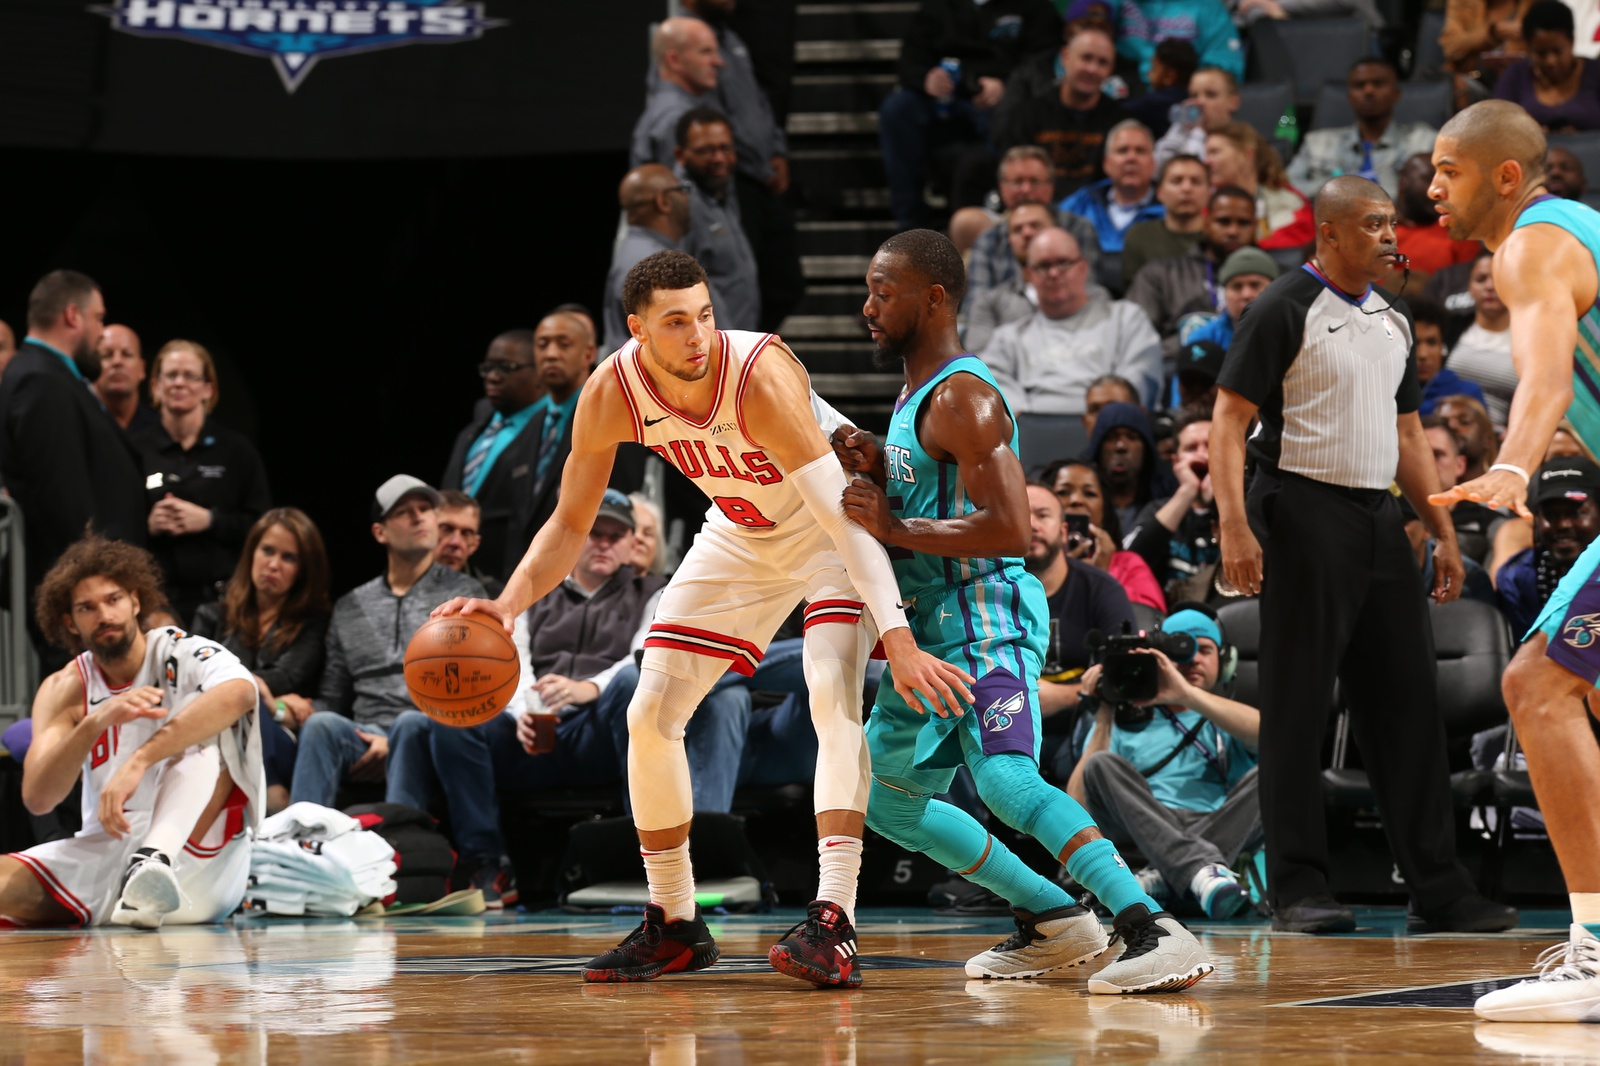 Zach LaVine handles the ball against Kemba Walker of the Charlotte Hornets